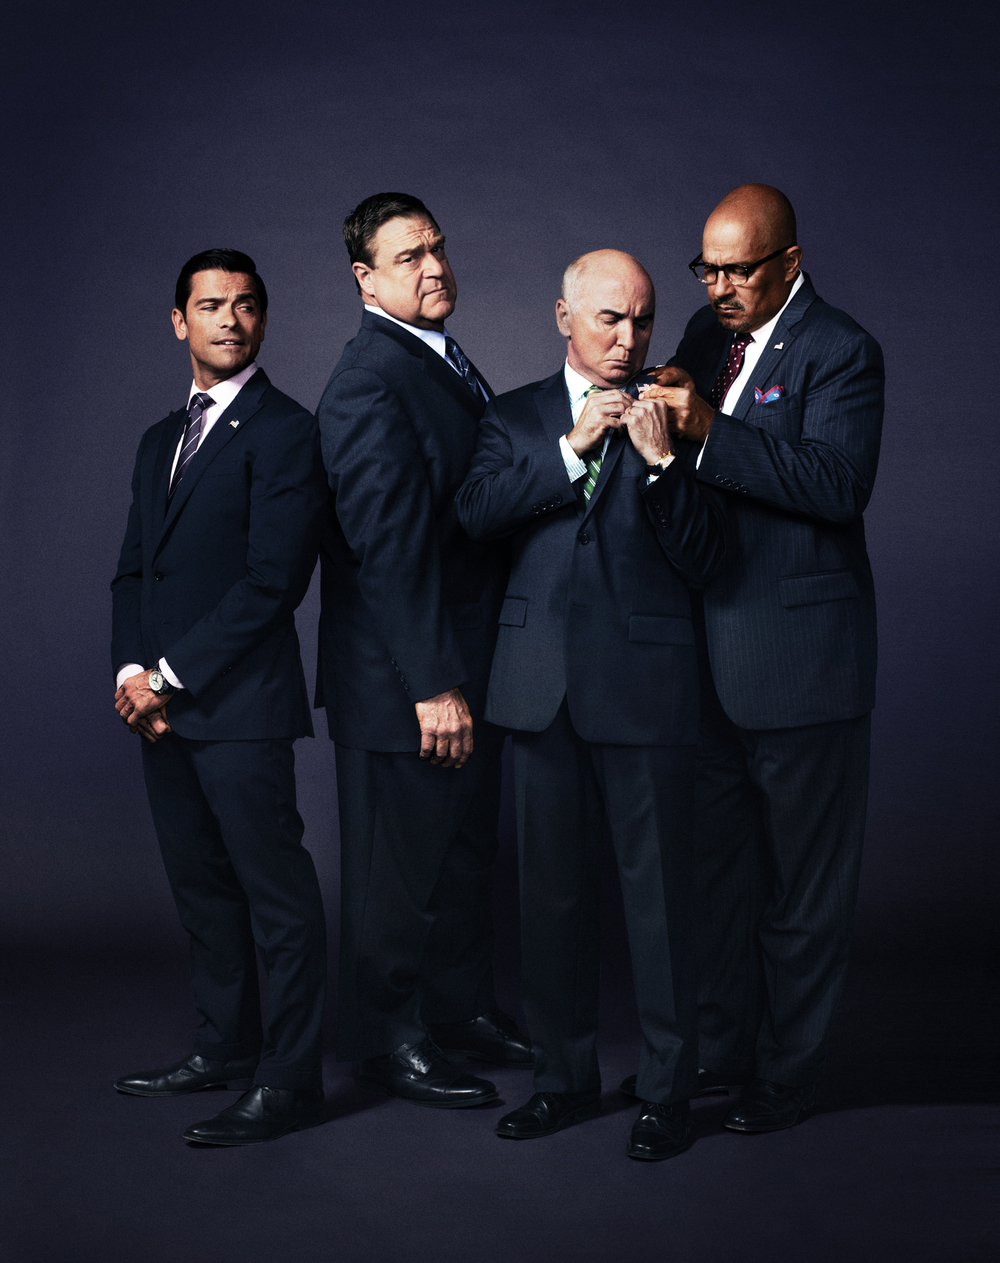 Alpha House Cast - Mark Conseulos, John Goodman, Matt Malloy, Clark Johnson - NYC